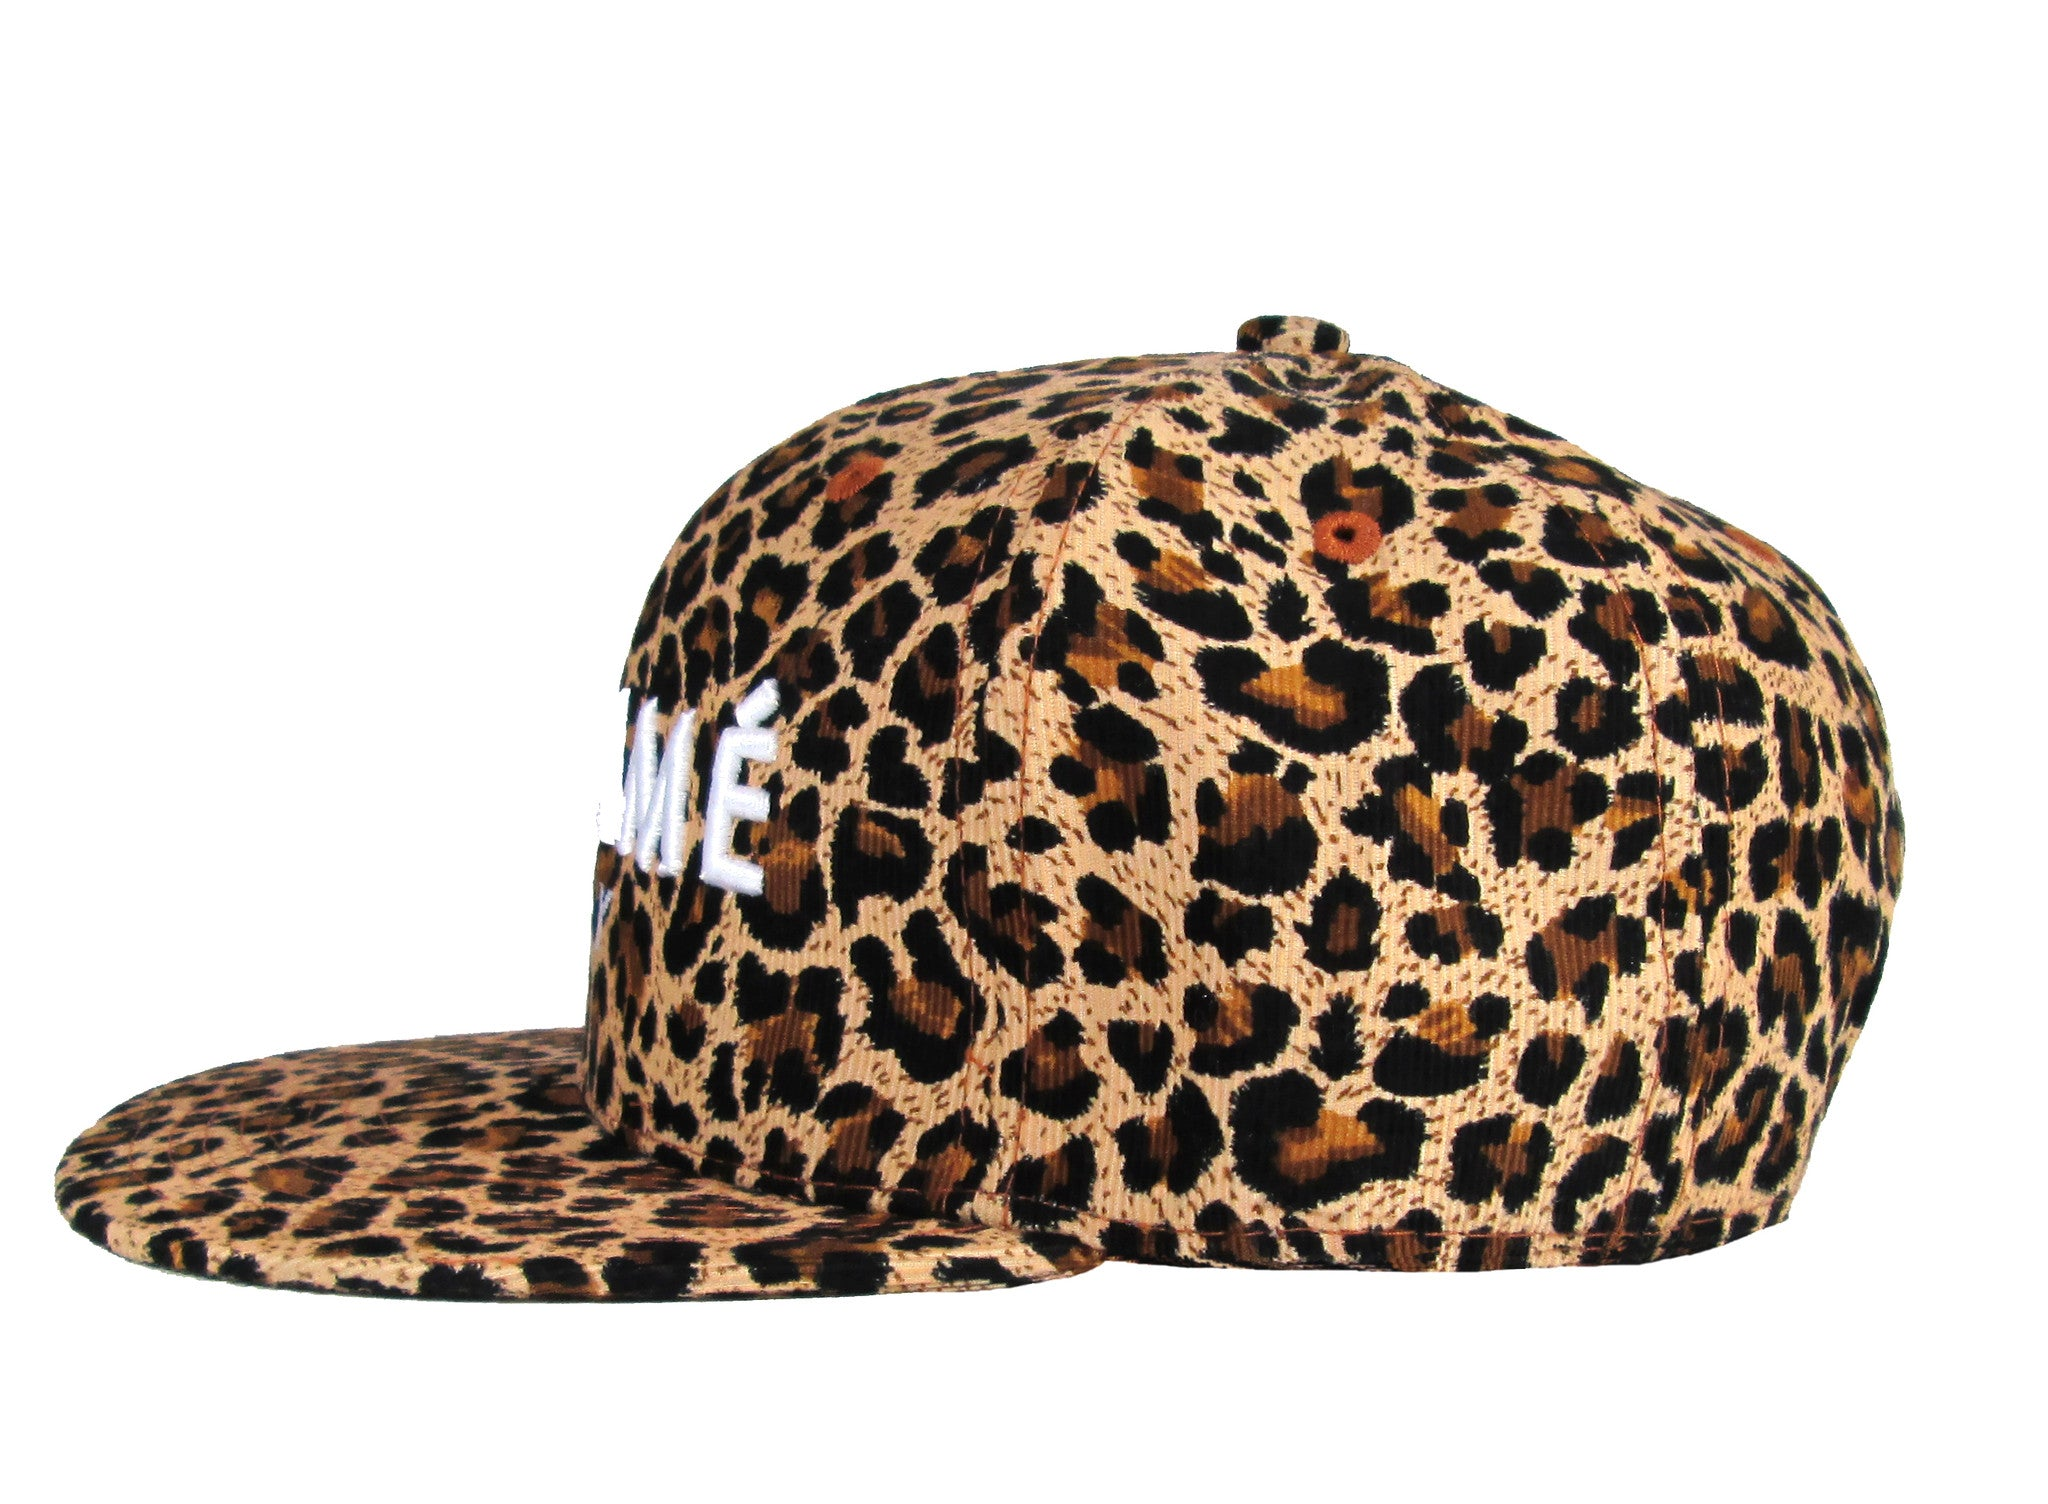 Alex & Chloe Leopard Snap Back Side View